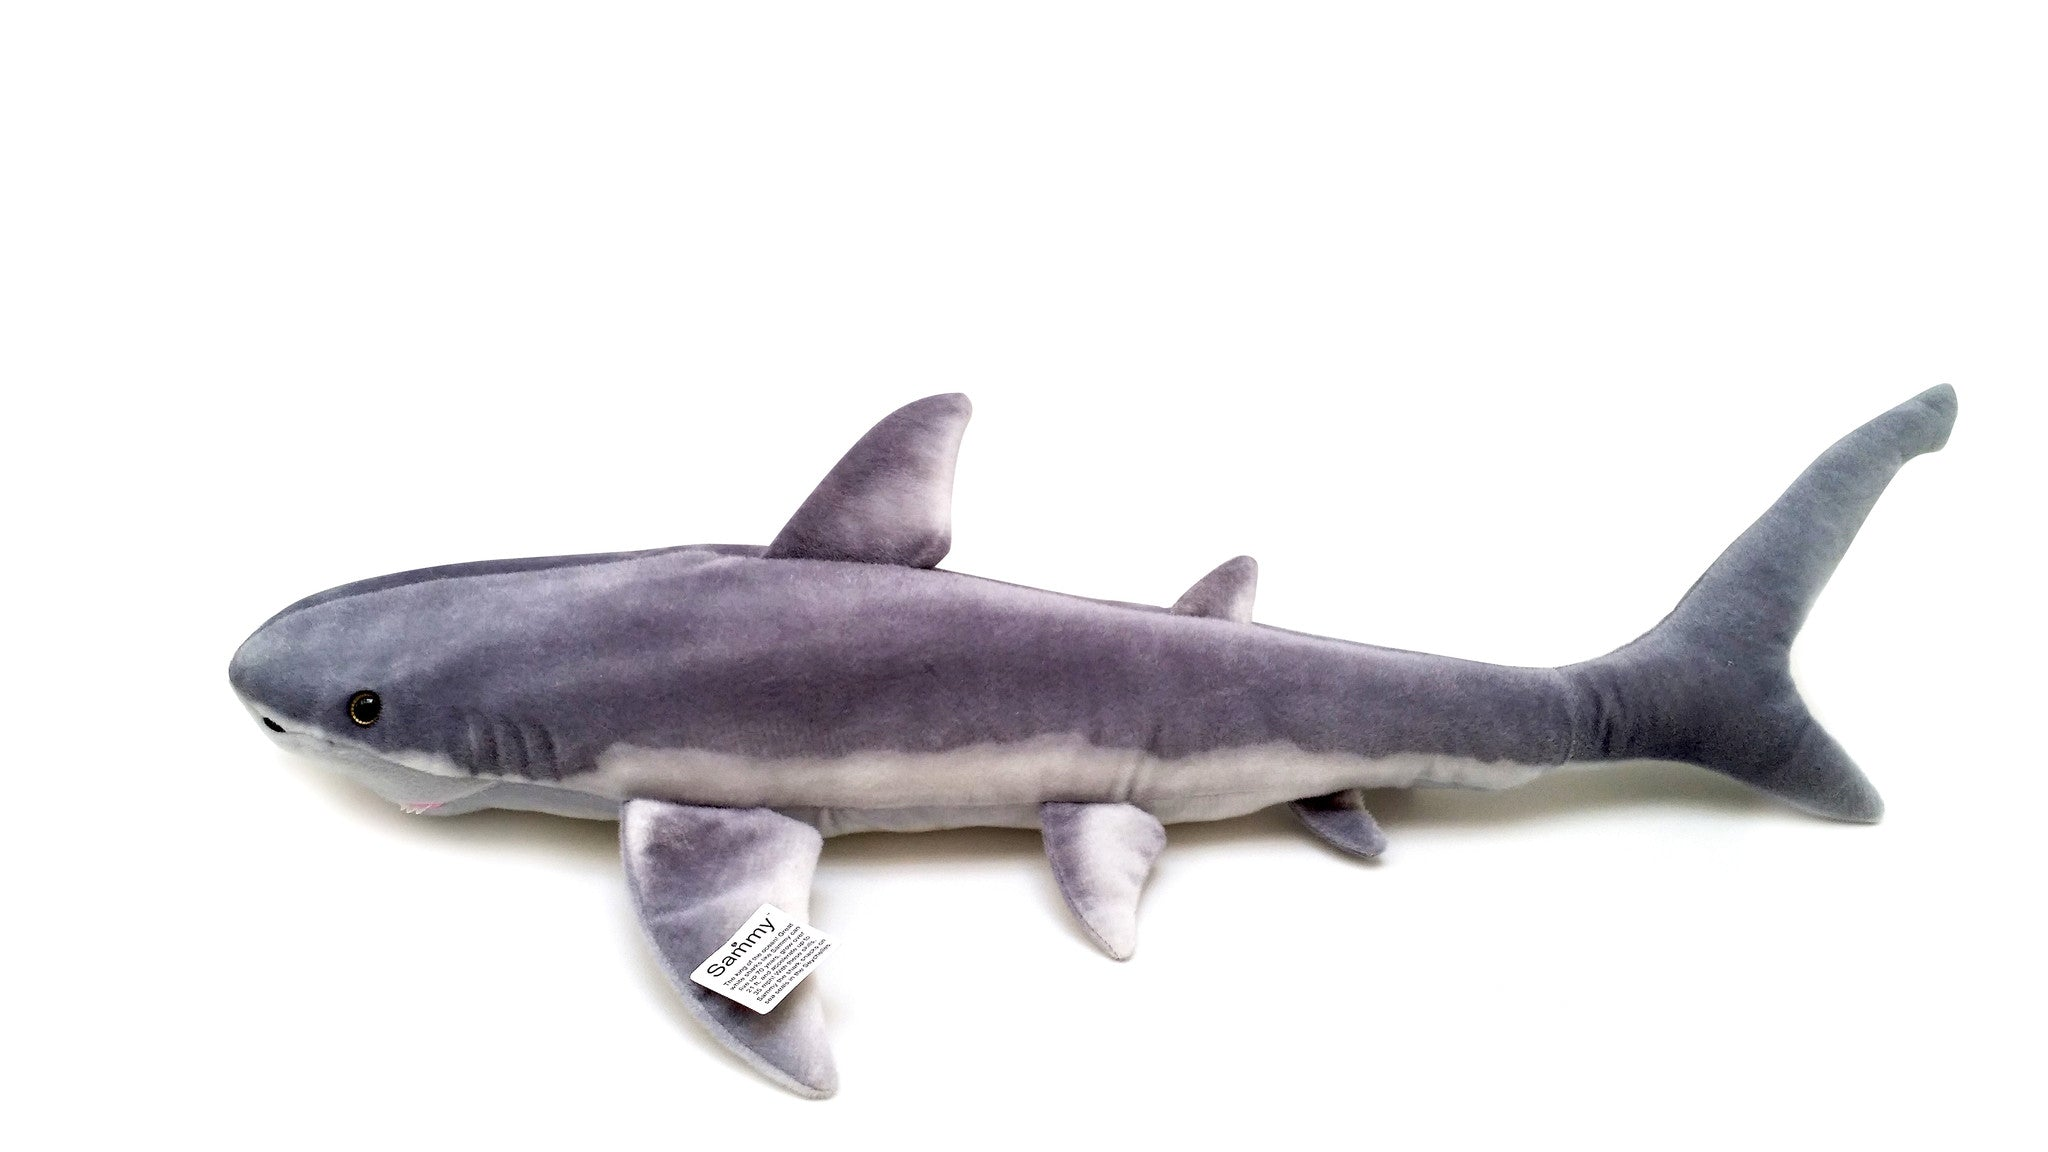 VIAHART 37 Inch Great White Shark Stuffed Animal Plush - Sammy the Shark